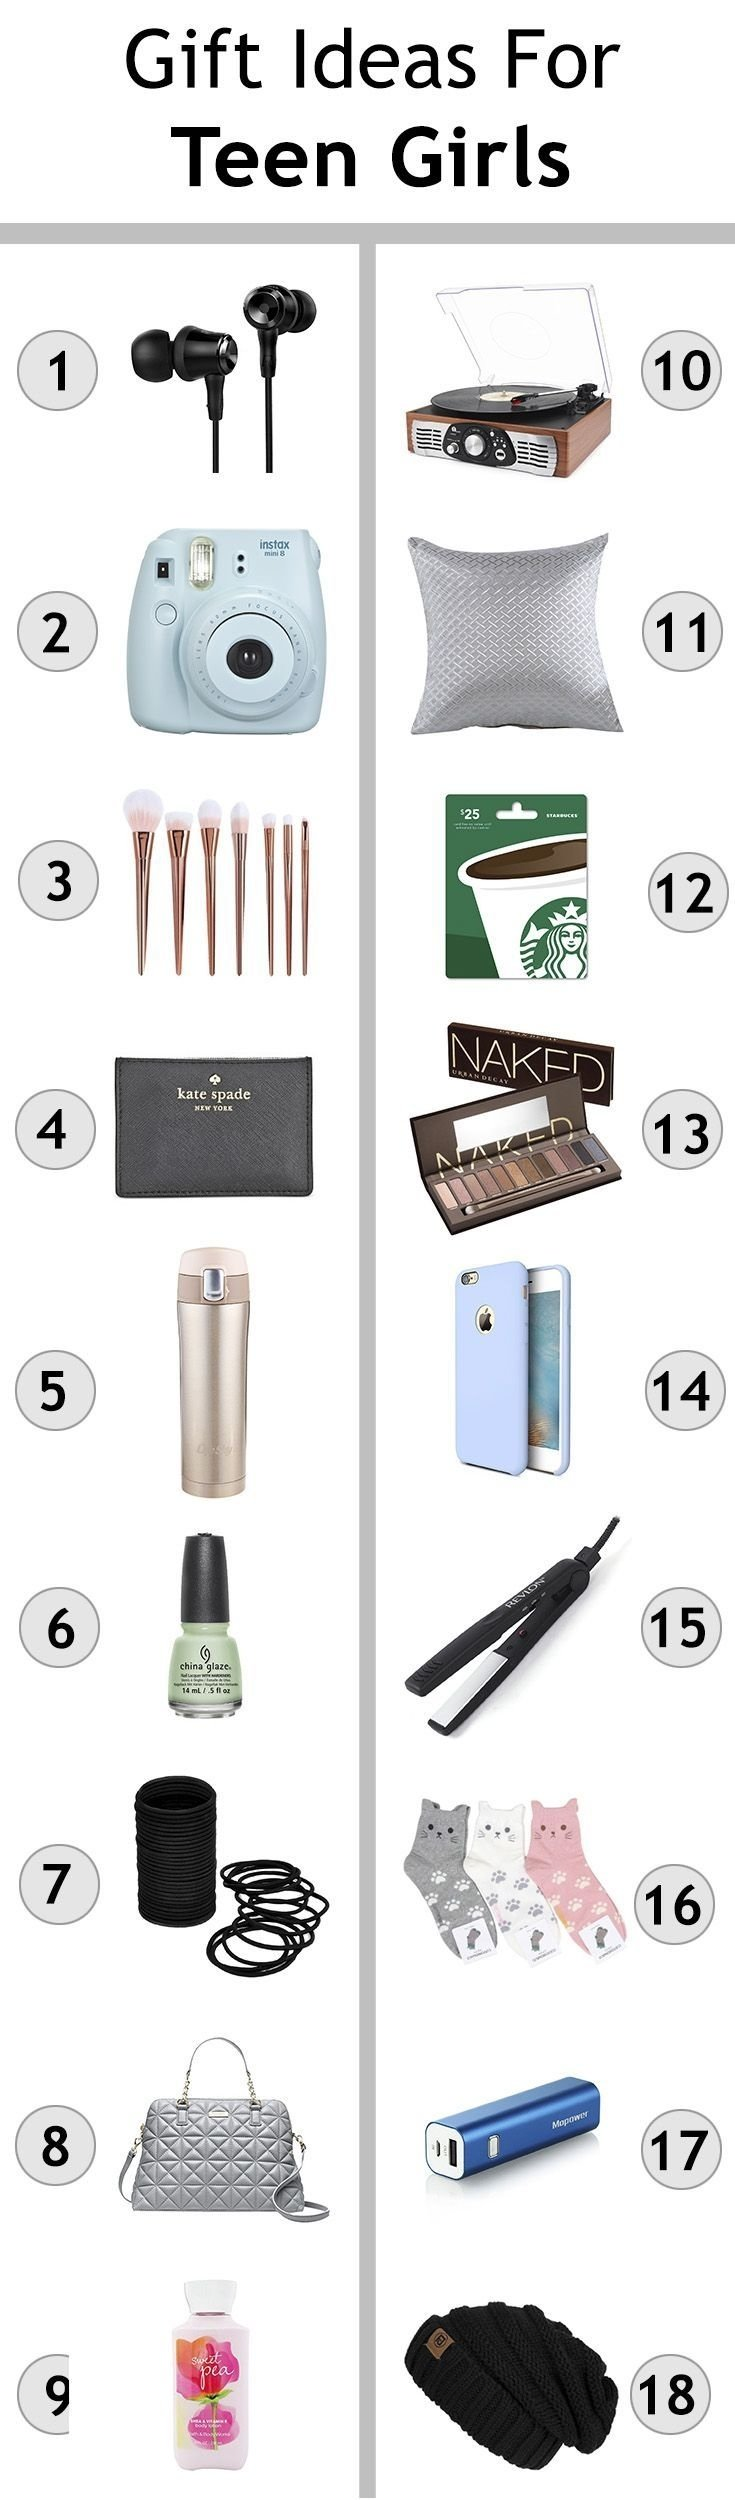 10 Lovely 18 Year Old Christmas Gift Ideas 5818 best christmas gift ideas images on pinterest gift ideas 3 2021